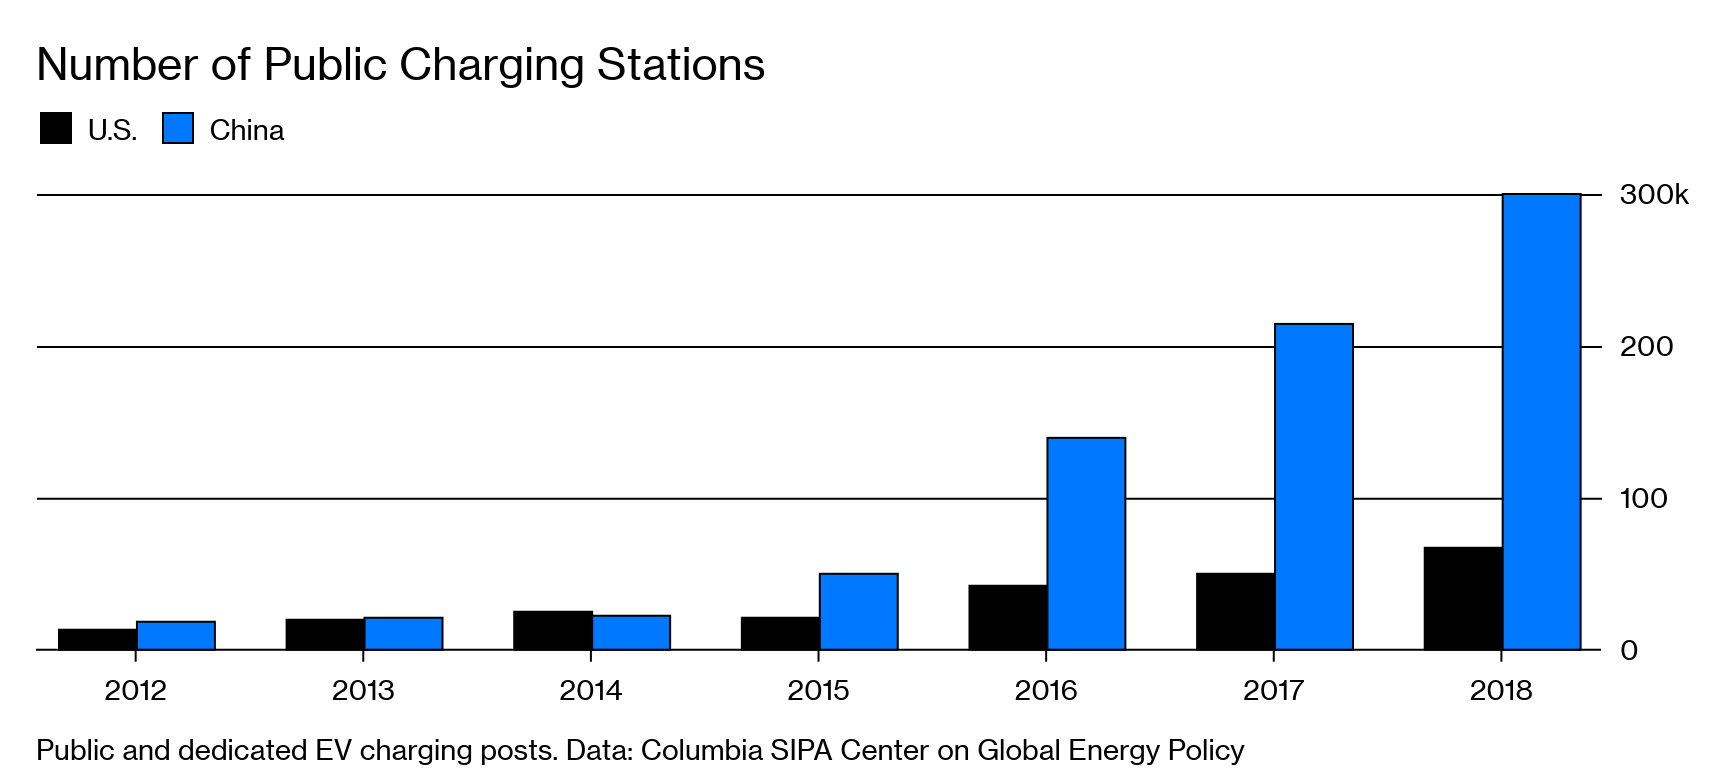 062fb51f6 Public and dedicated EV charging posts. Data: Columbia SIPA Center on  Global Energy Policy